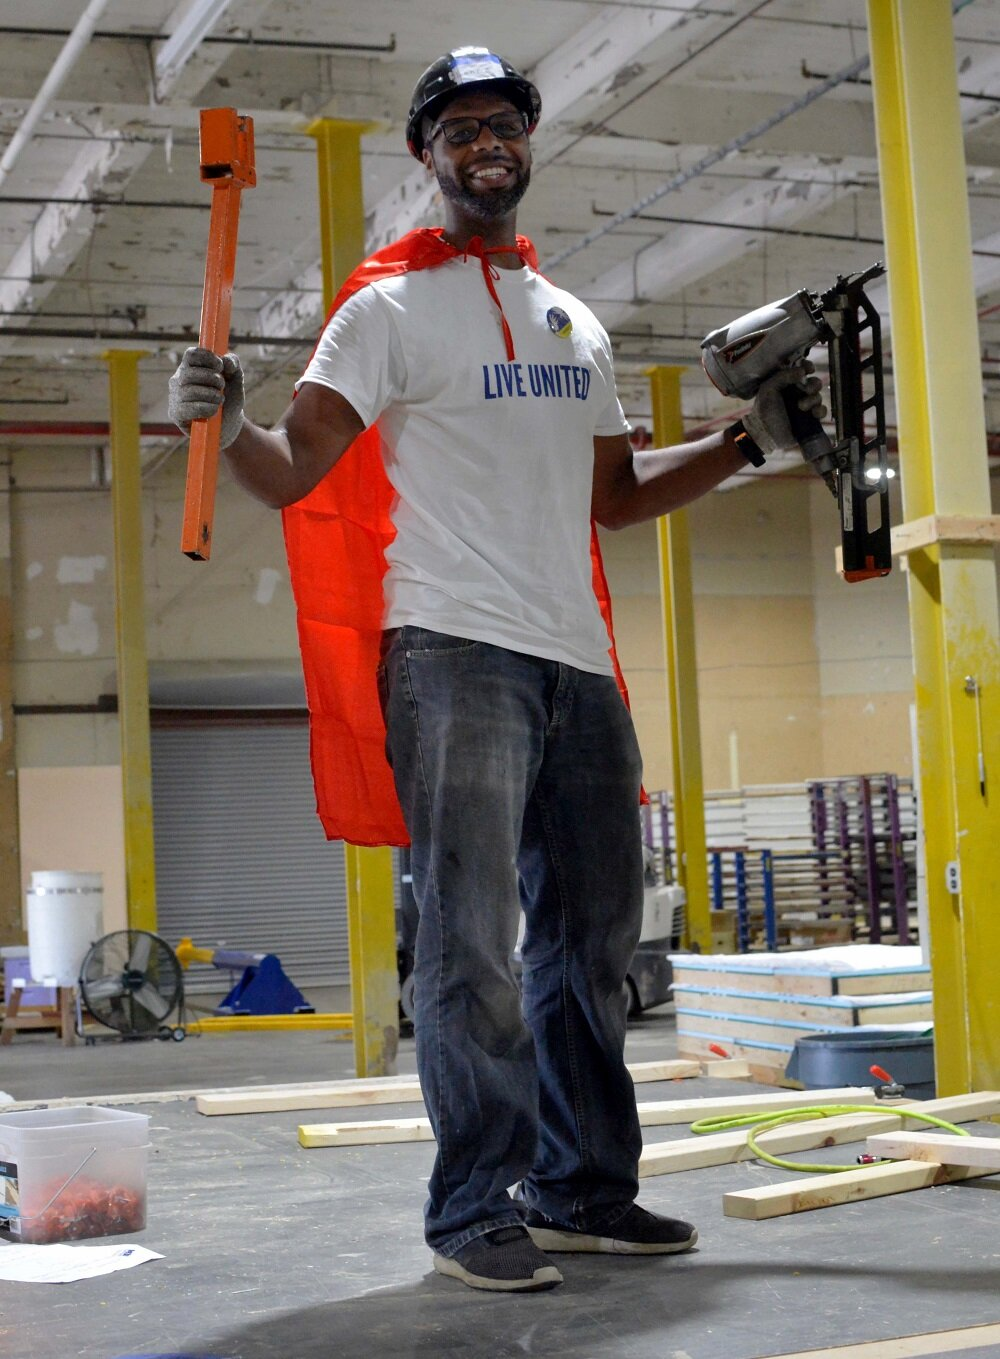 Volunteer from Dematic getting into character at Habitat for Humanity of Kent County.